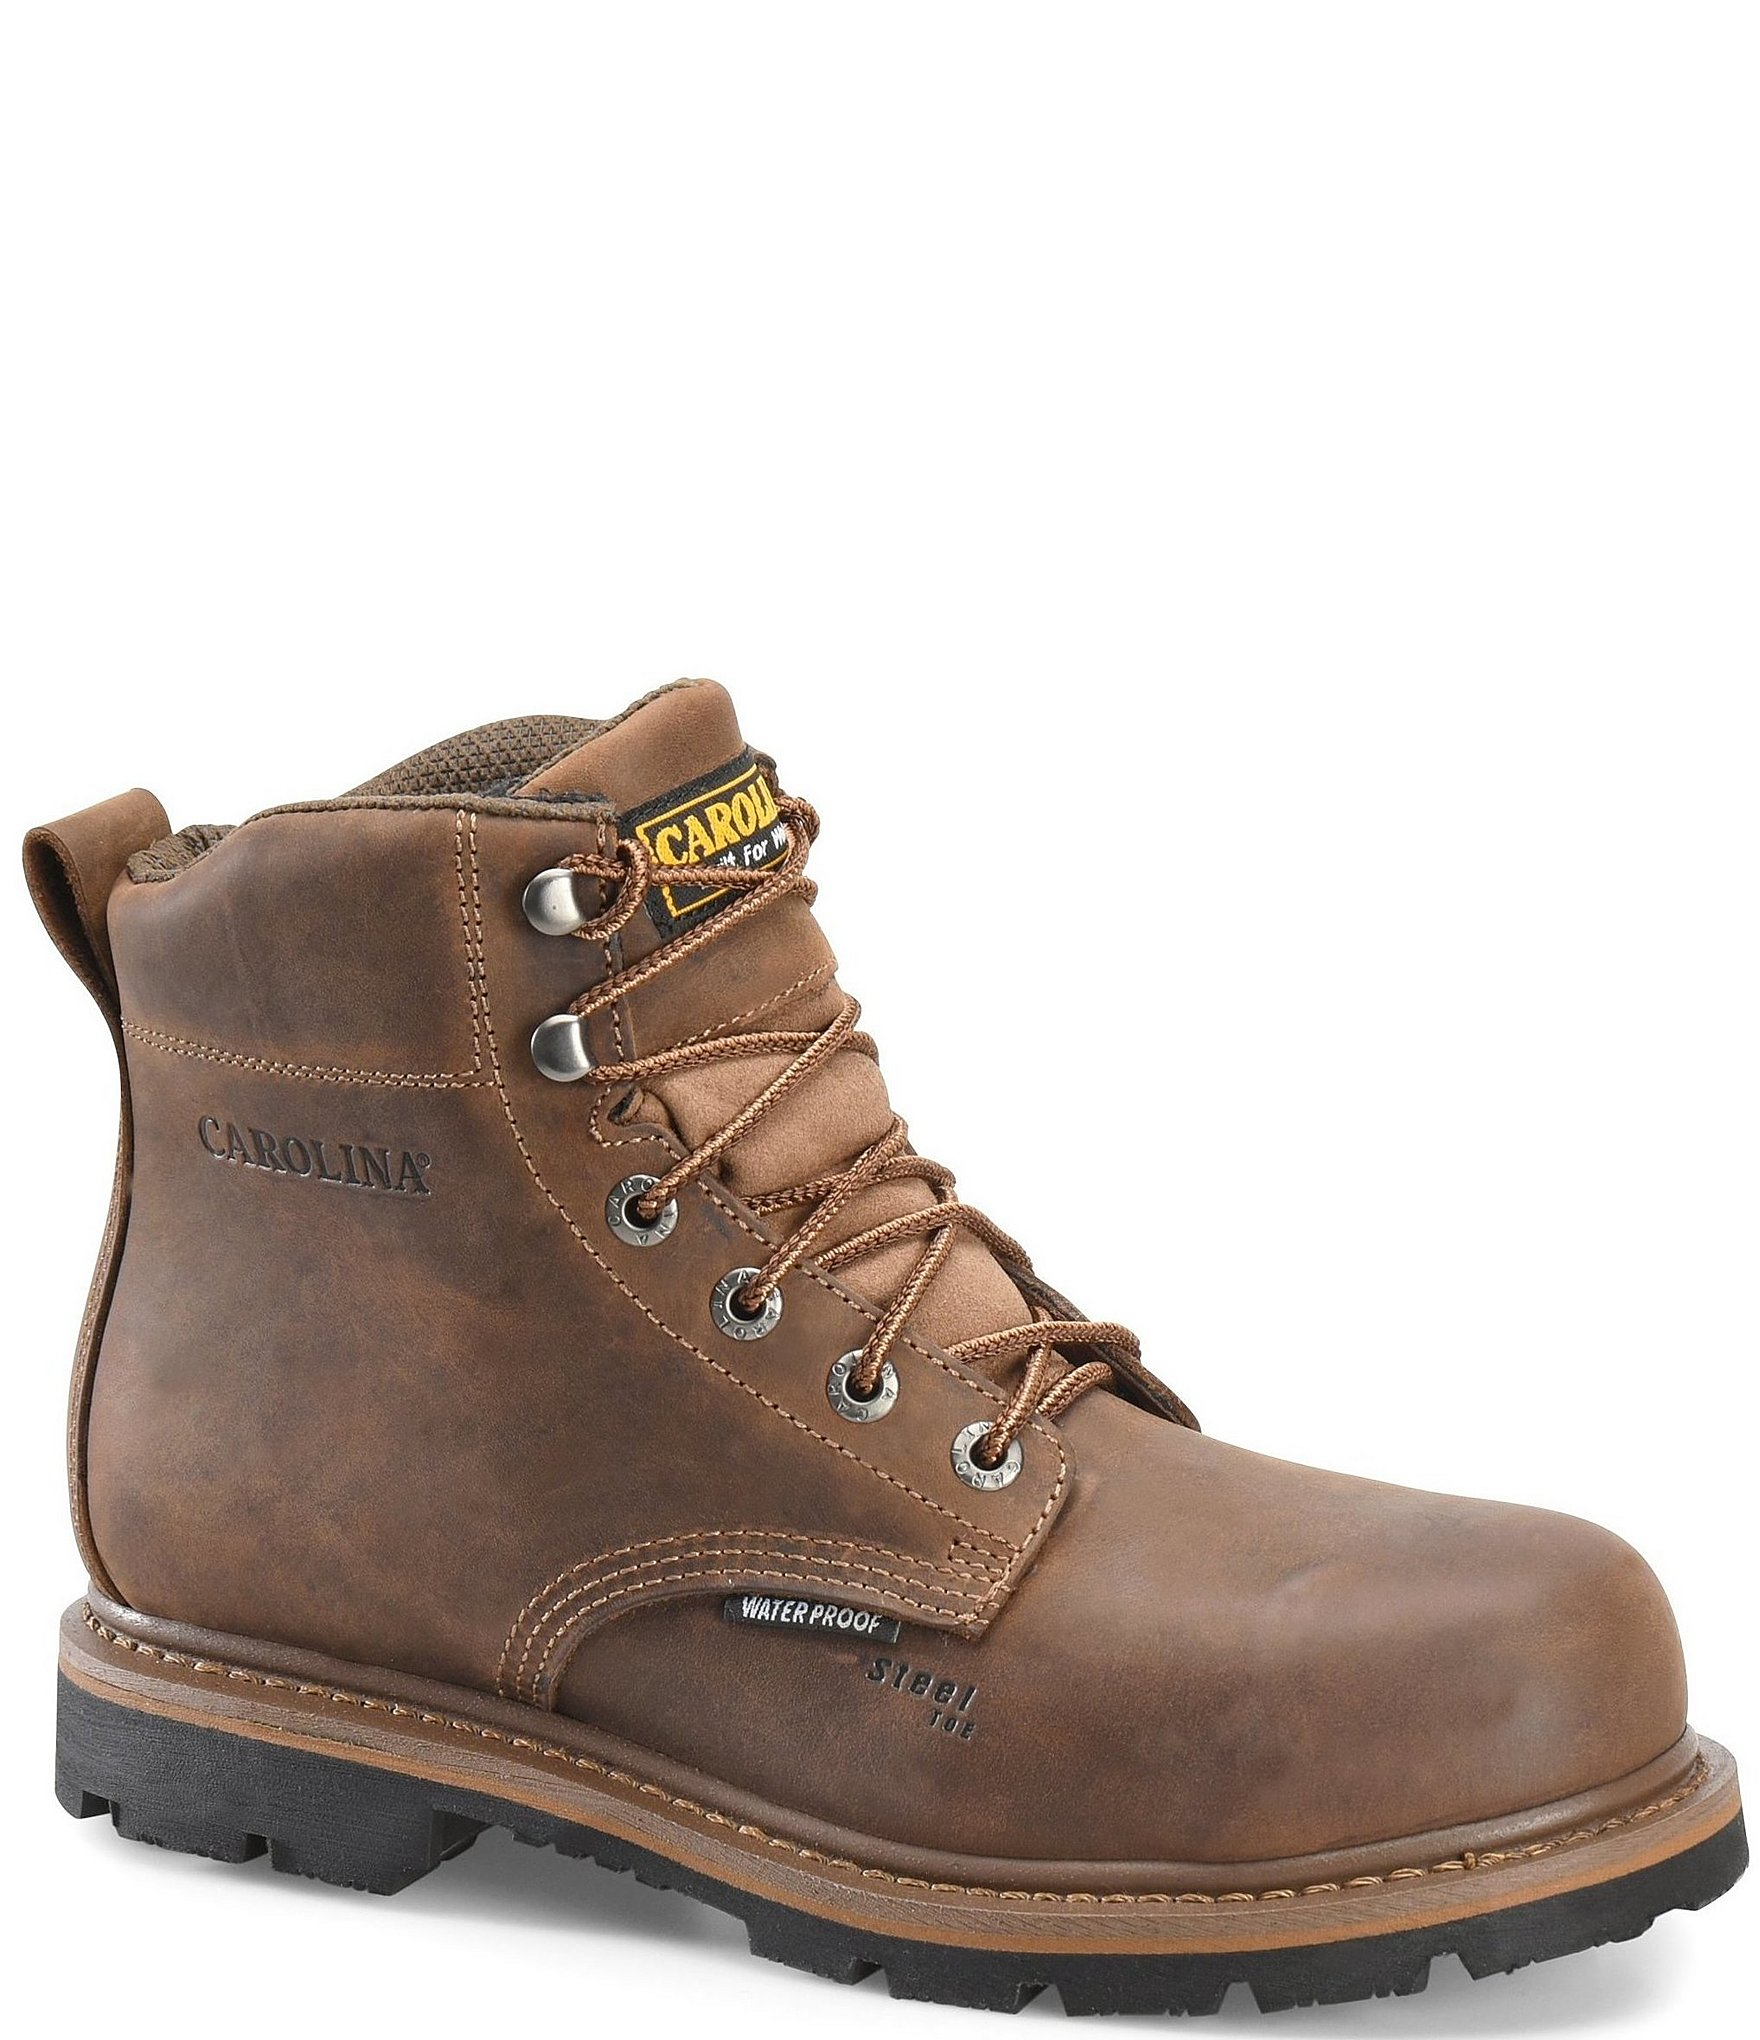 ba1c6415574 Carolina Men's 6#double; Waterproof Steel Toe Dormer Work Boots